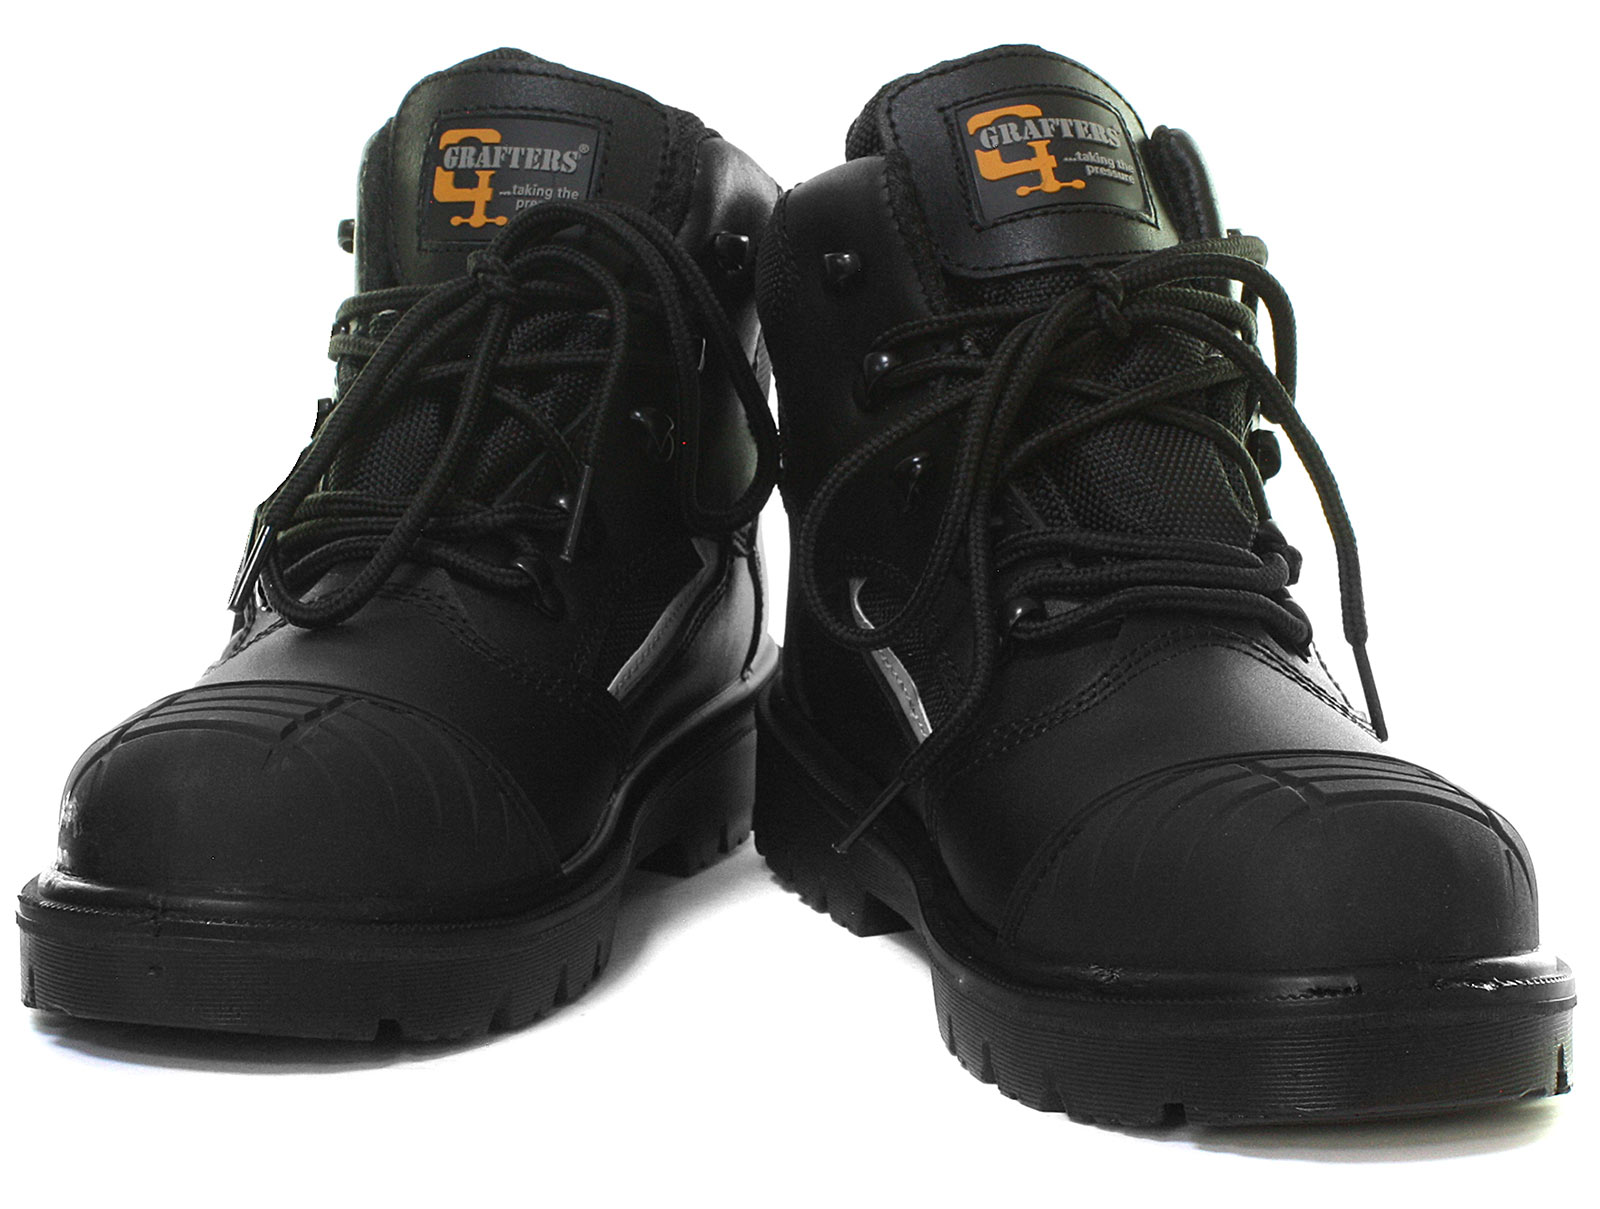 Grafters Boots M850a Sizes Safety Unisex Waterproof Hiker Type All rYrz6UqPwx